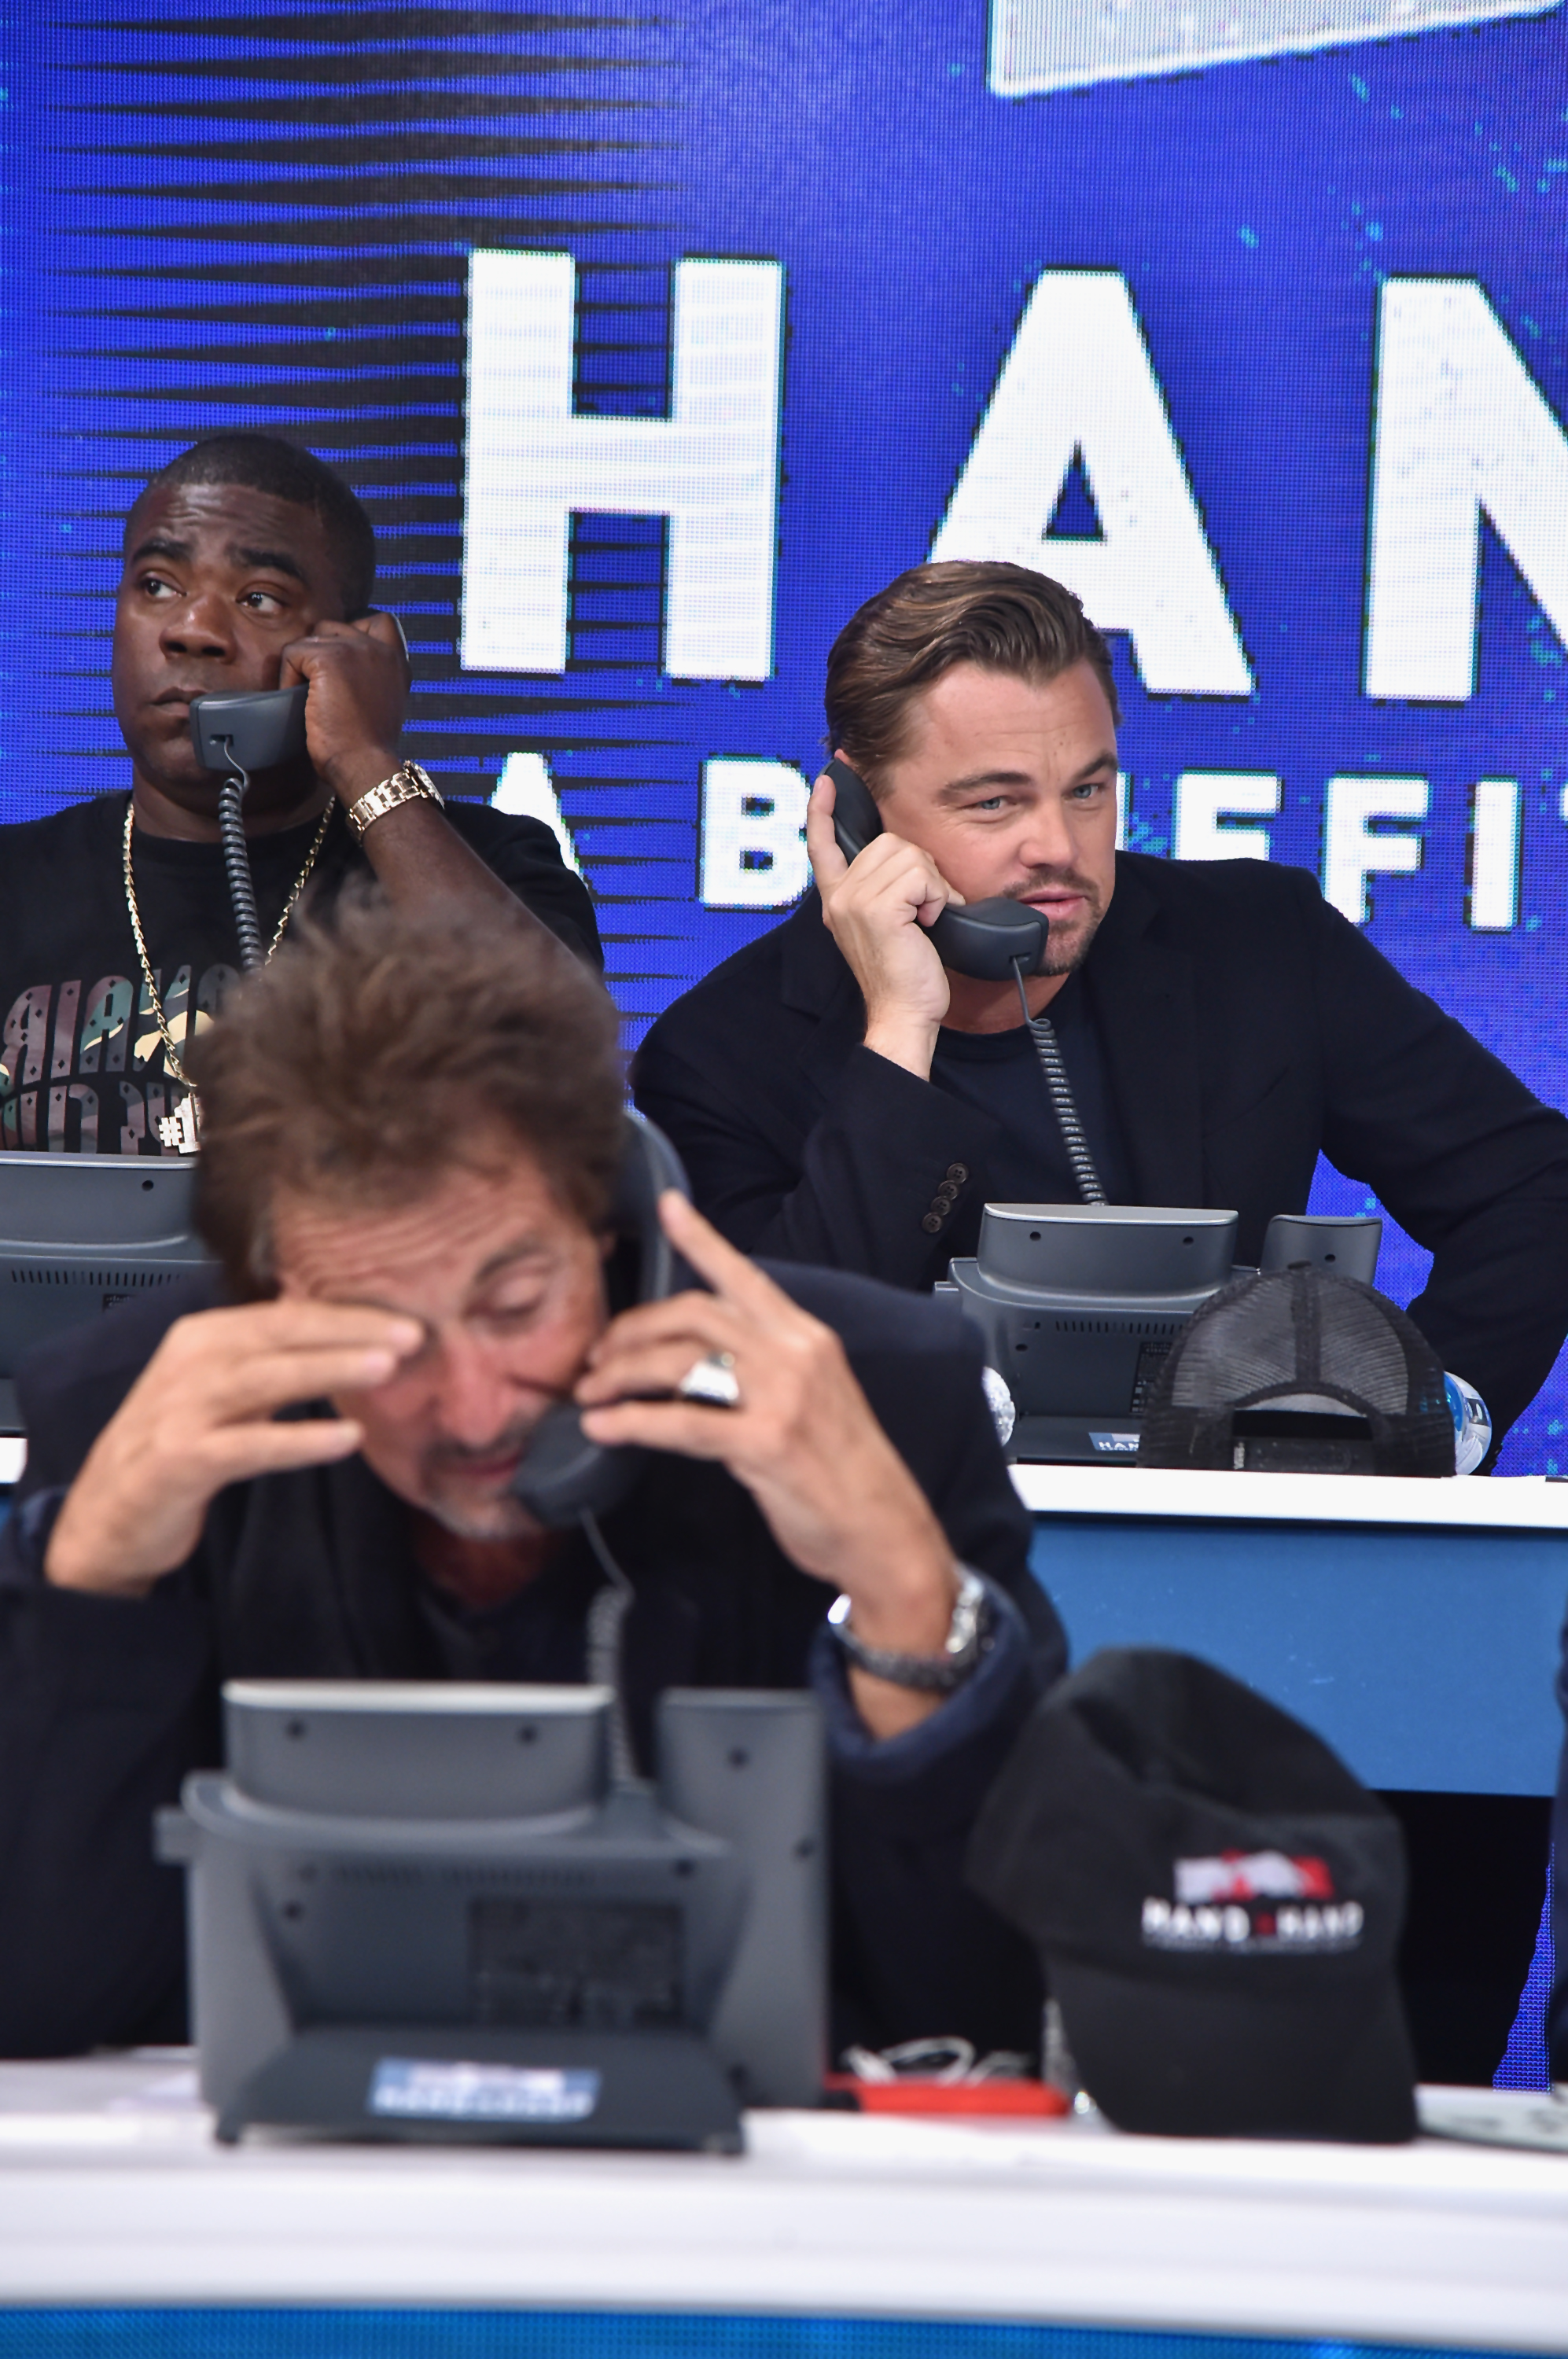 "<div class=""meta image-caption""><div class=""origin-logo origin-image none""><span>none</span></div><span class=""caption-text"">Tracy Morgan, Leonardo DiCaprio and Al Pacino man the phones during the Hand in Hand benefit at ABC News' Good Morning America Times Square Studio in New York. (Theo Wargo/Hand in Hand/Getty Images))</span></div>"